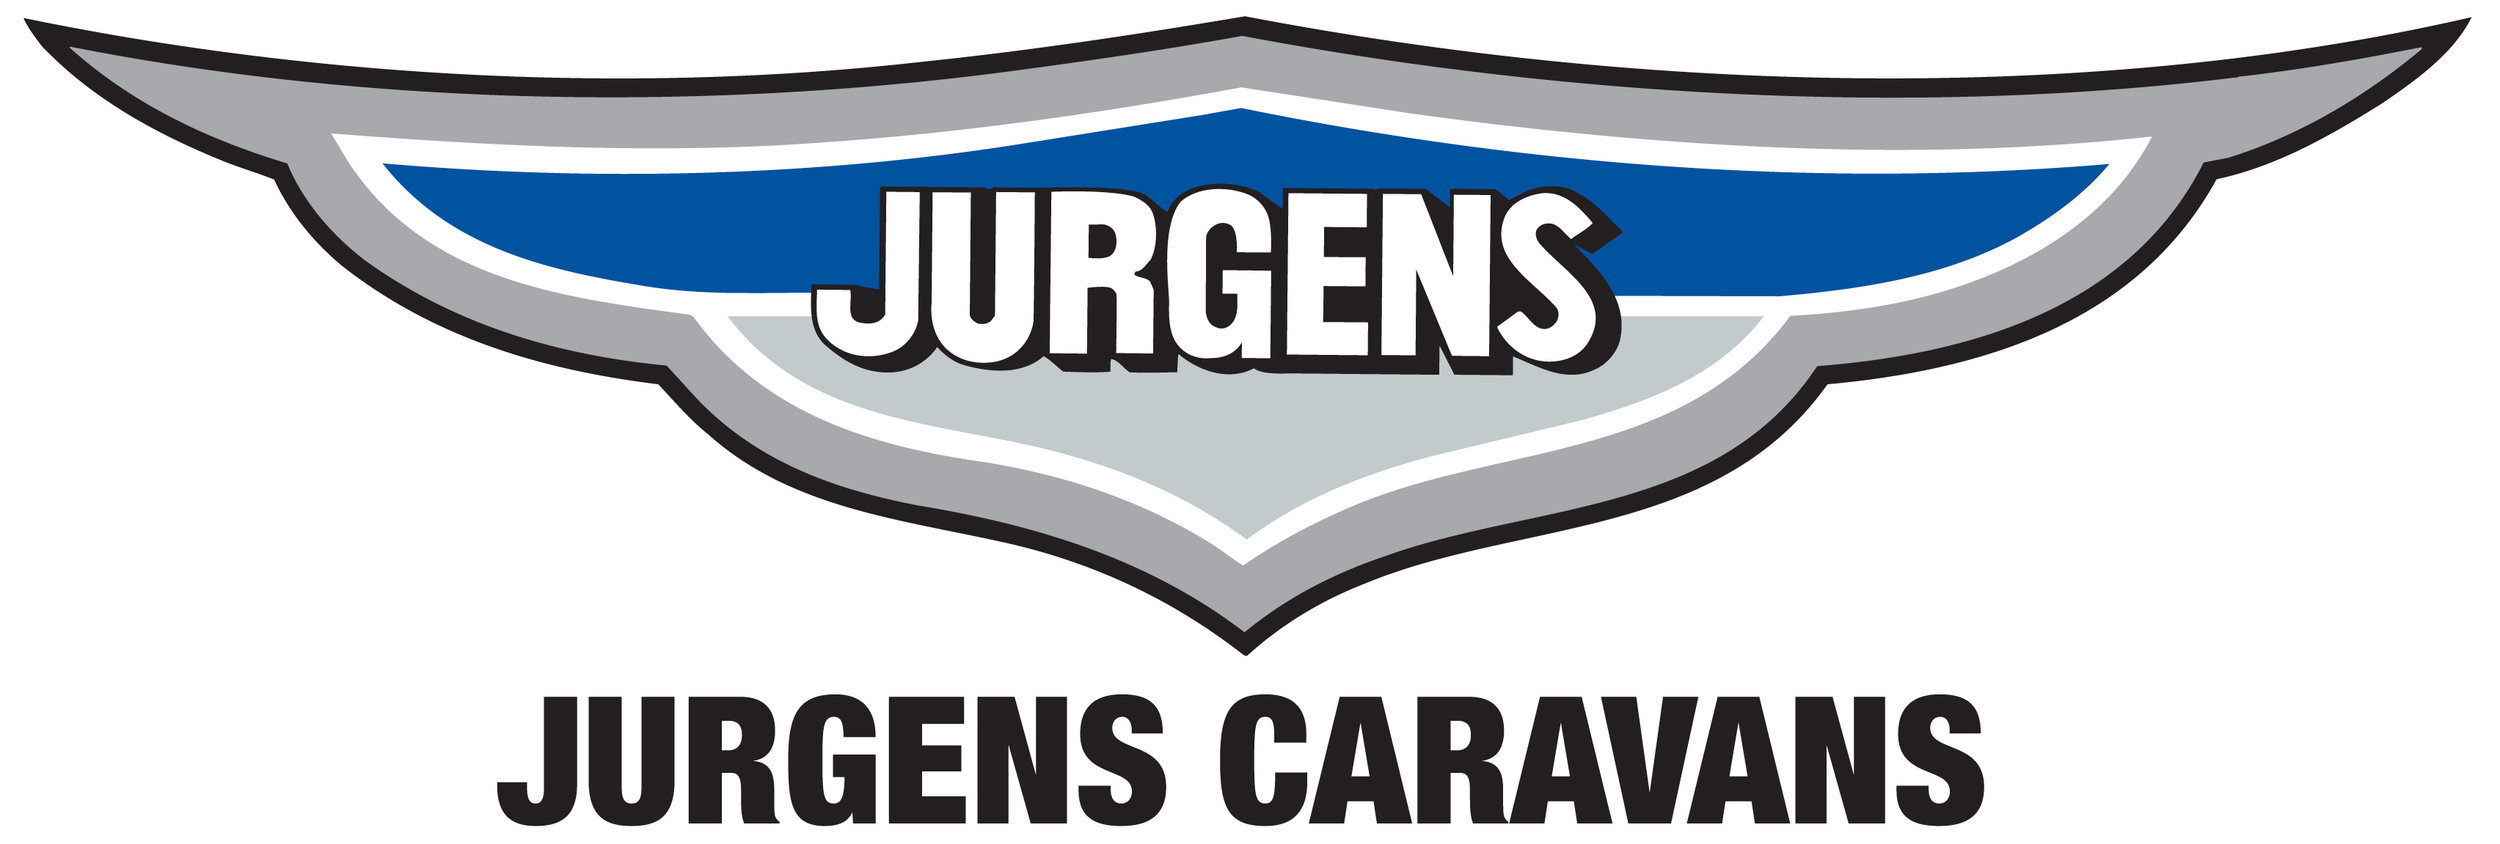 WE LOVE OUR JURGENS CARAVAN. ITS PERFECT FOR ALL OUR ADVENTURES!!!